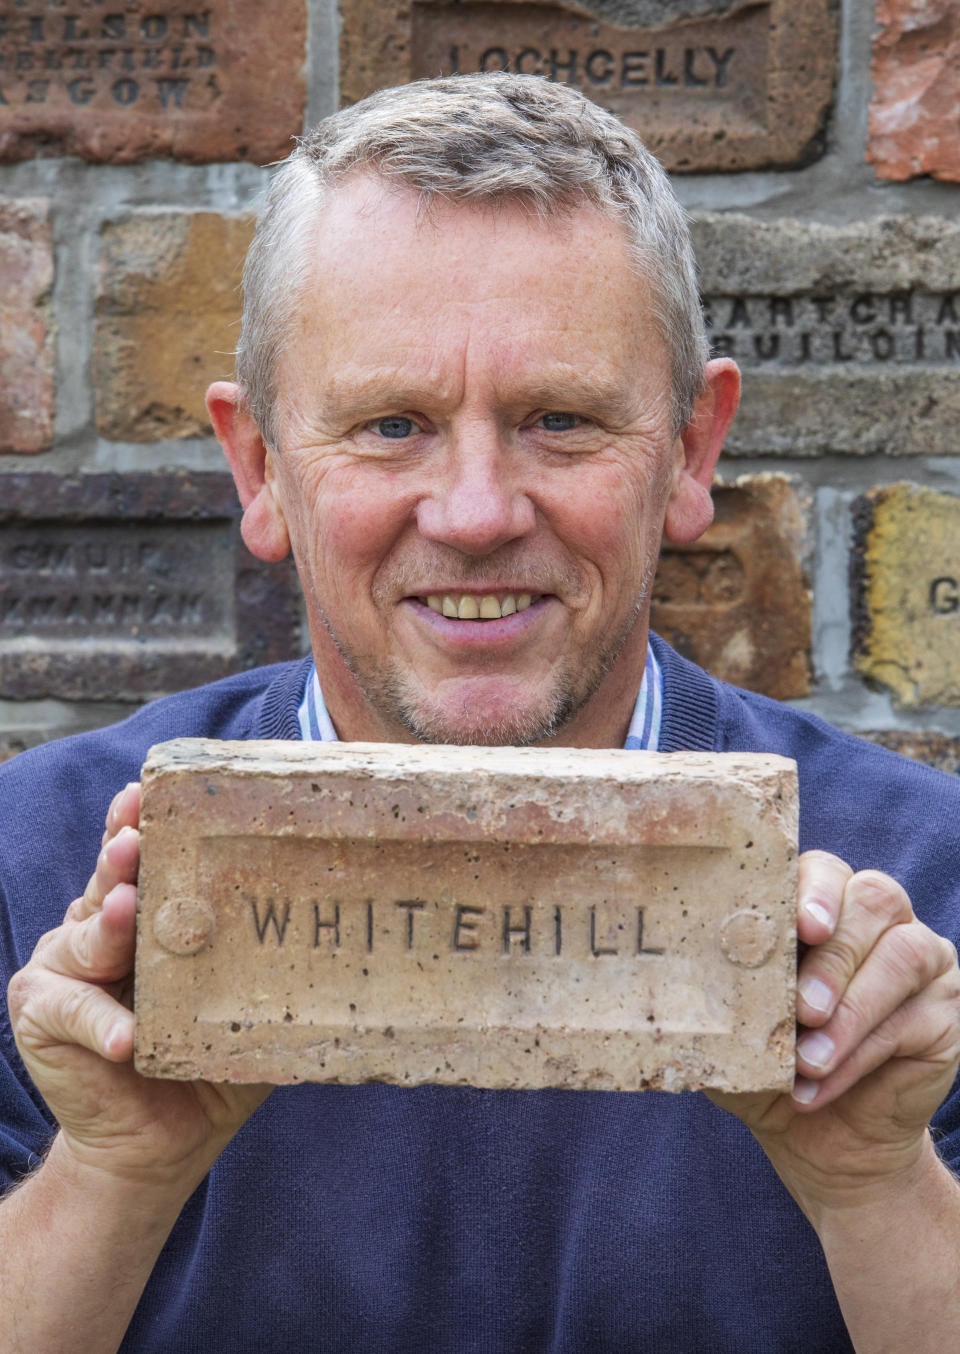 Mr Cranston said: 'I was just looking for a brick to keep the garage door open and the first I picked up had a name on it.' (SWNS)